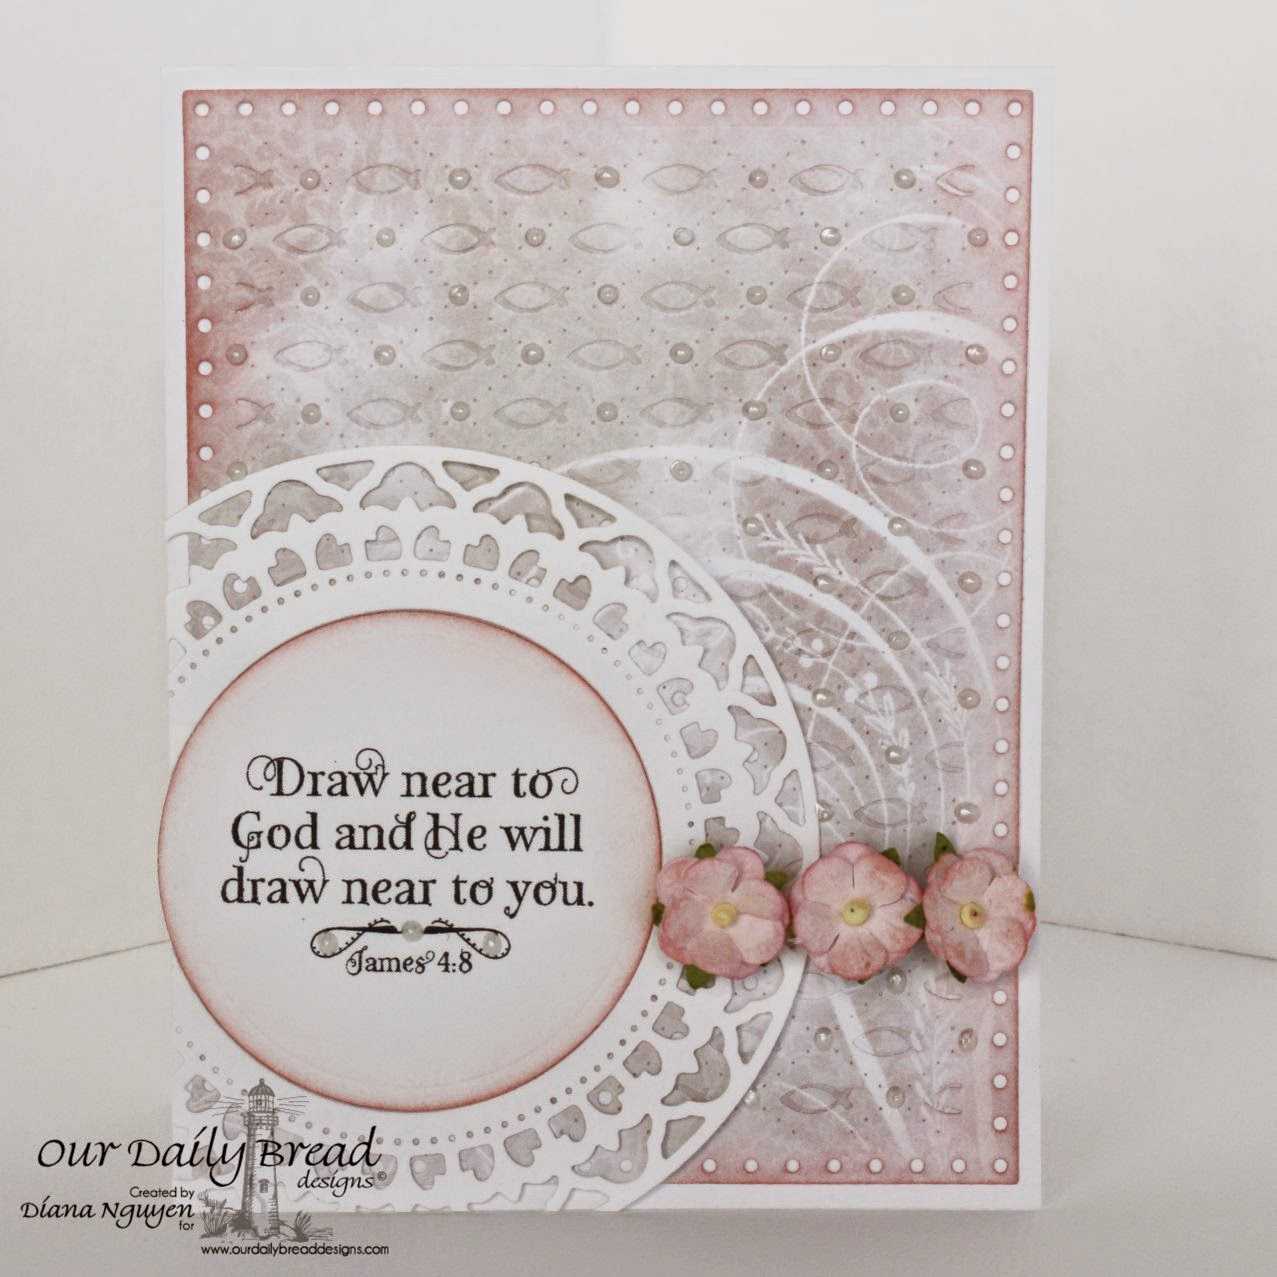 Diana Nguyen, Shabby Rose, Our Daily Bread Designs, God Verses, Faithful Fish Pattern Die, Spellbinders Splendid Circles